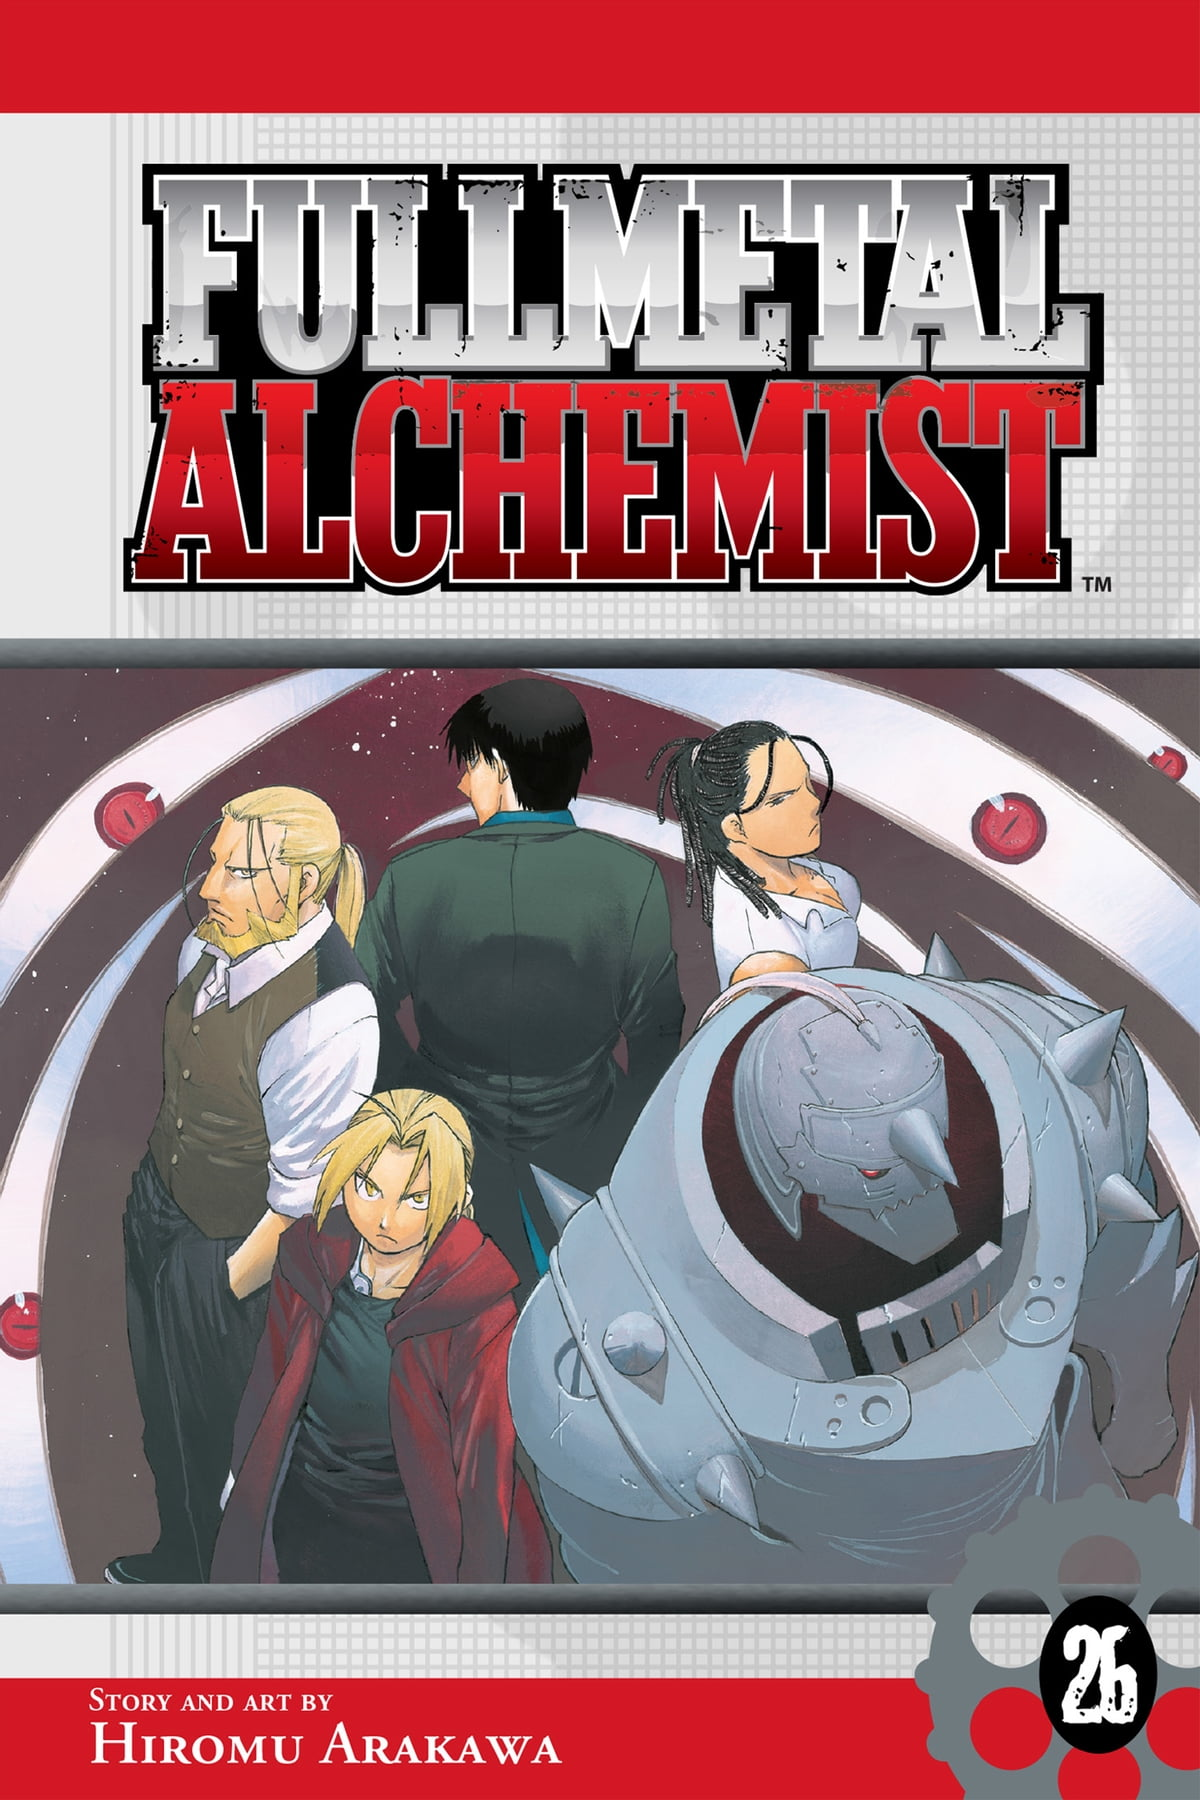 The Alchemist Full Book